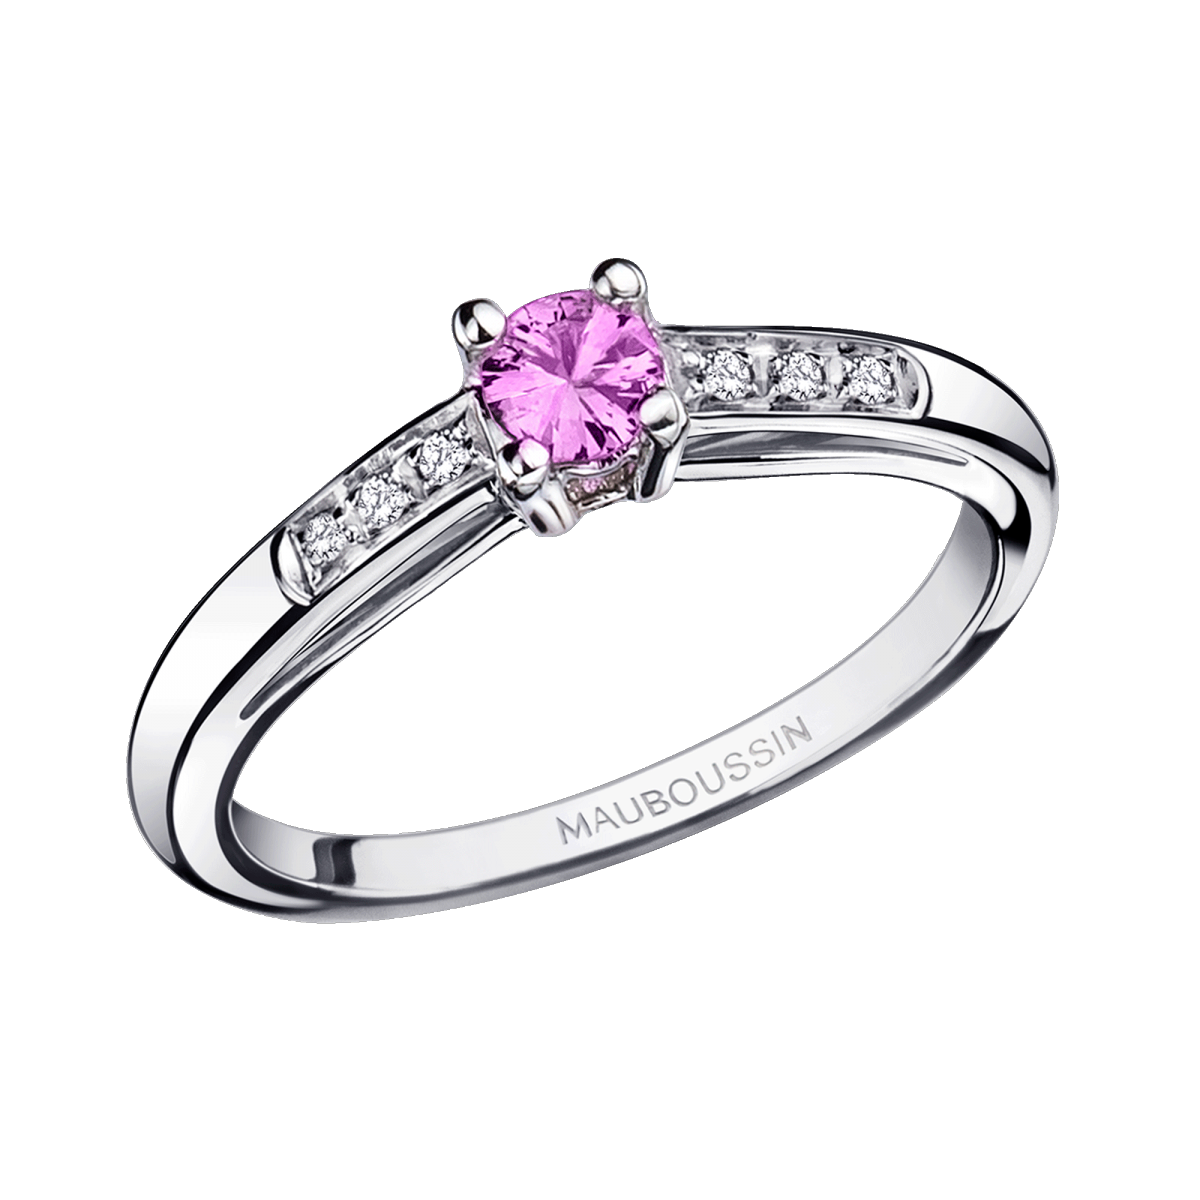 Bonjour les Amoureux ring, white gold, pink sapphire